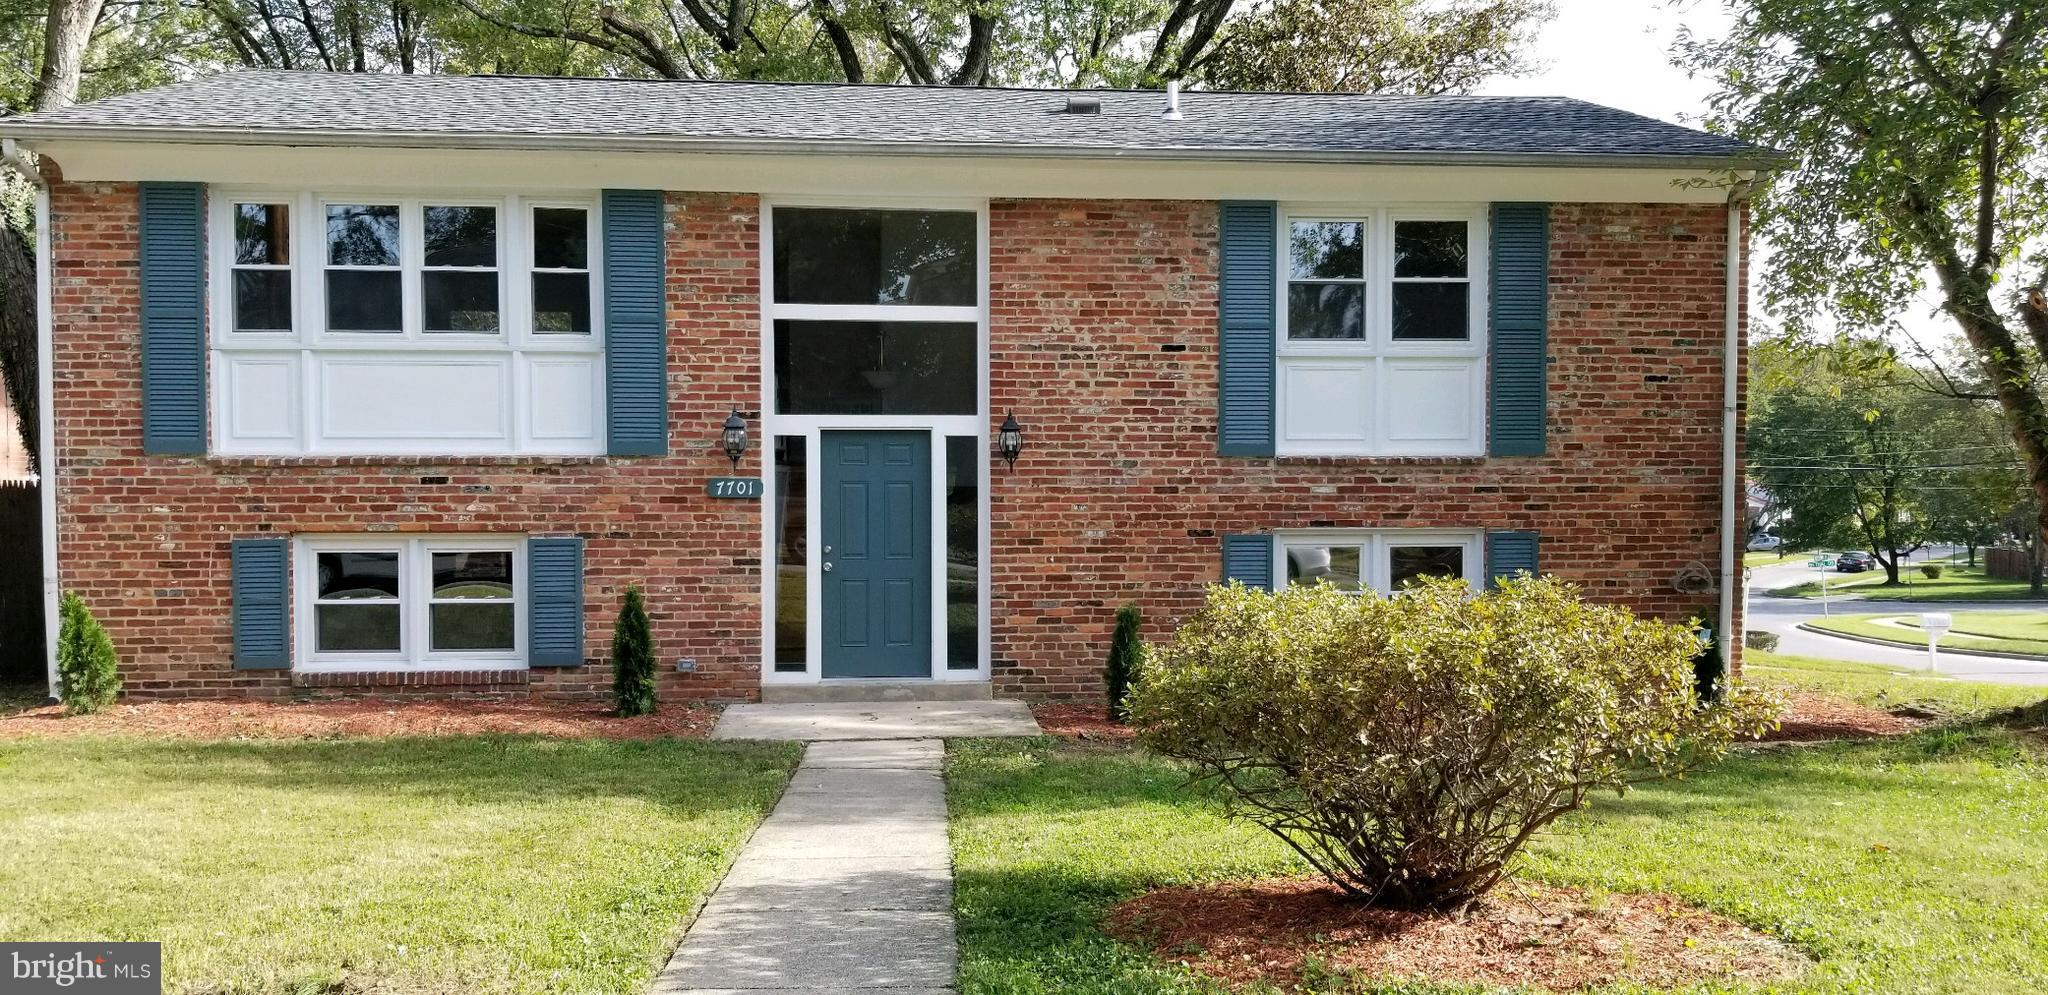 7701 FANWOOD COURT, DISTRICT HEIGHTS, MD 20747